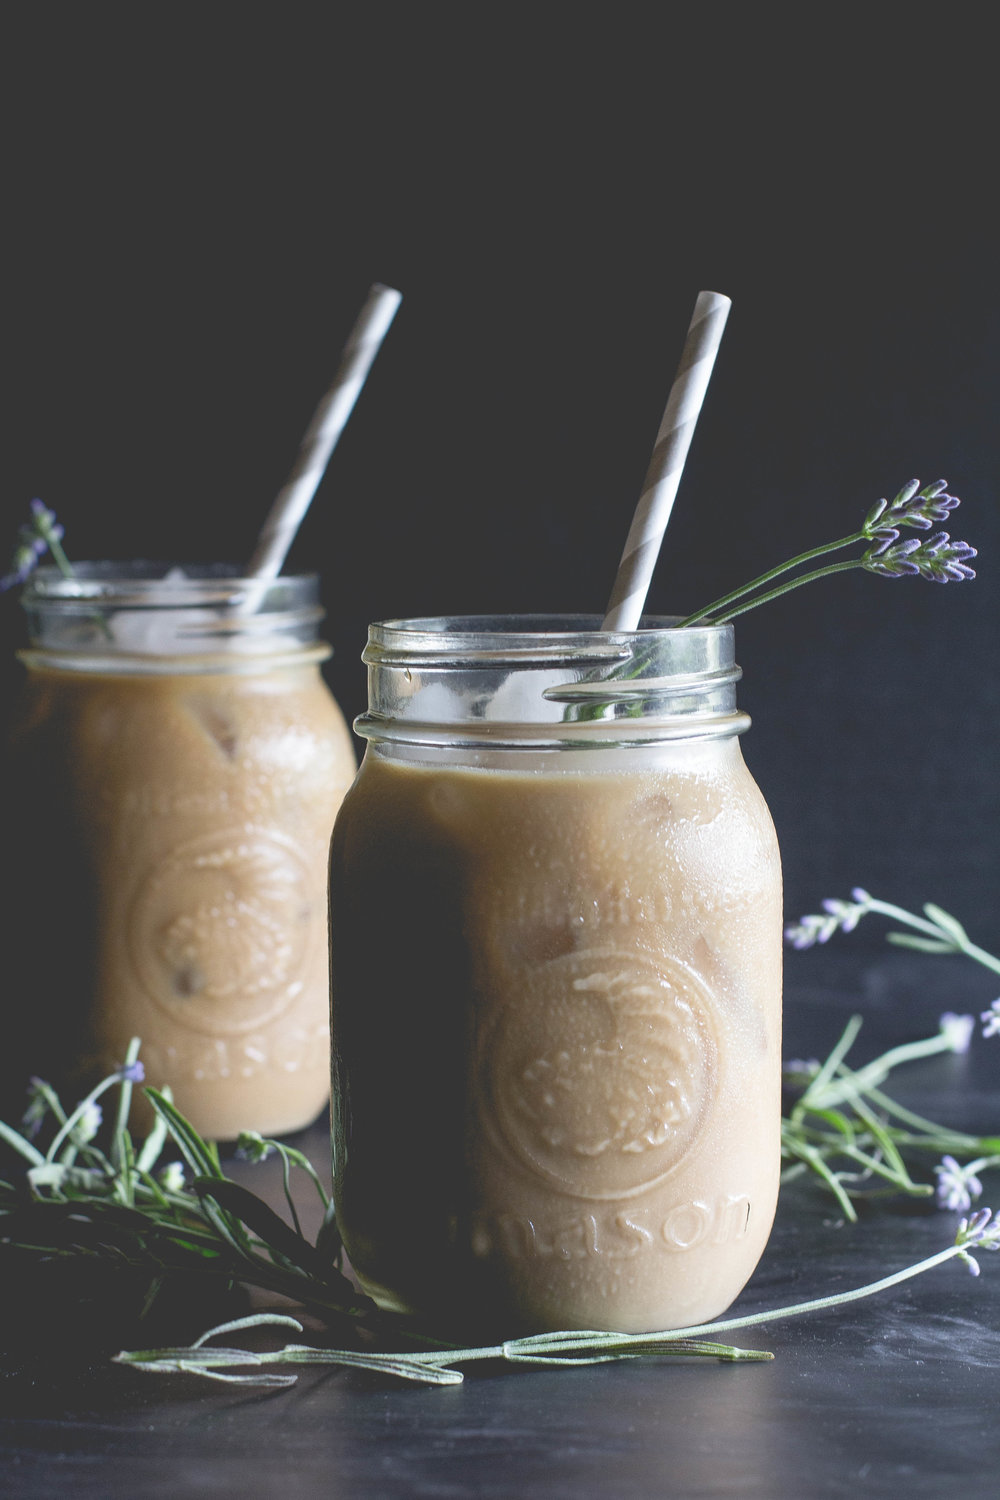 Lavender-Honey-Iced-Latte-offbeat-inspired-4.jpg